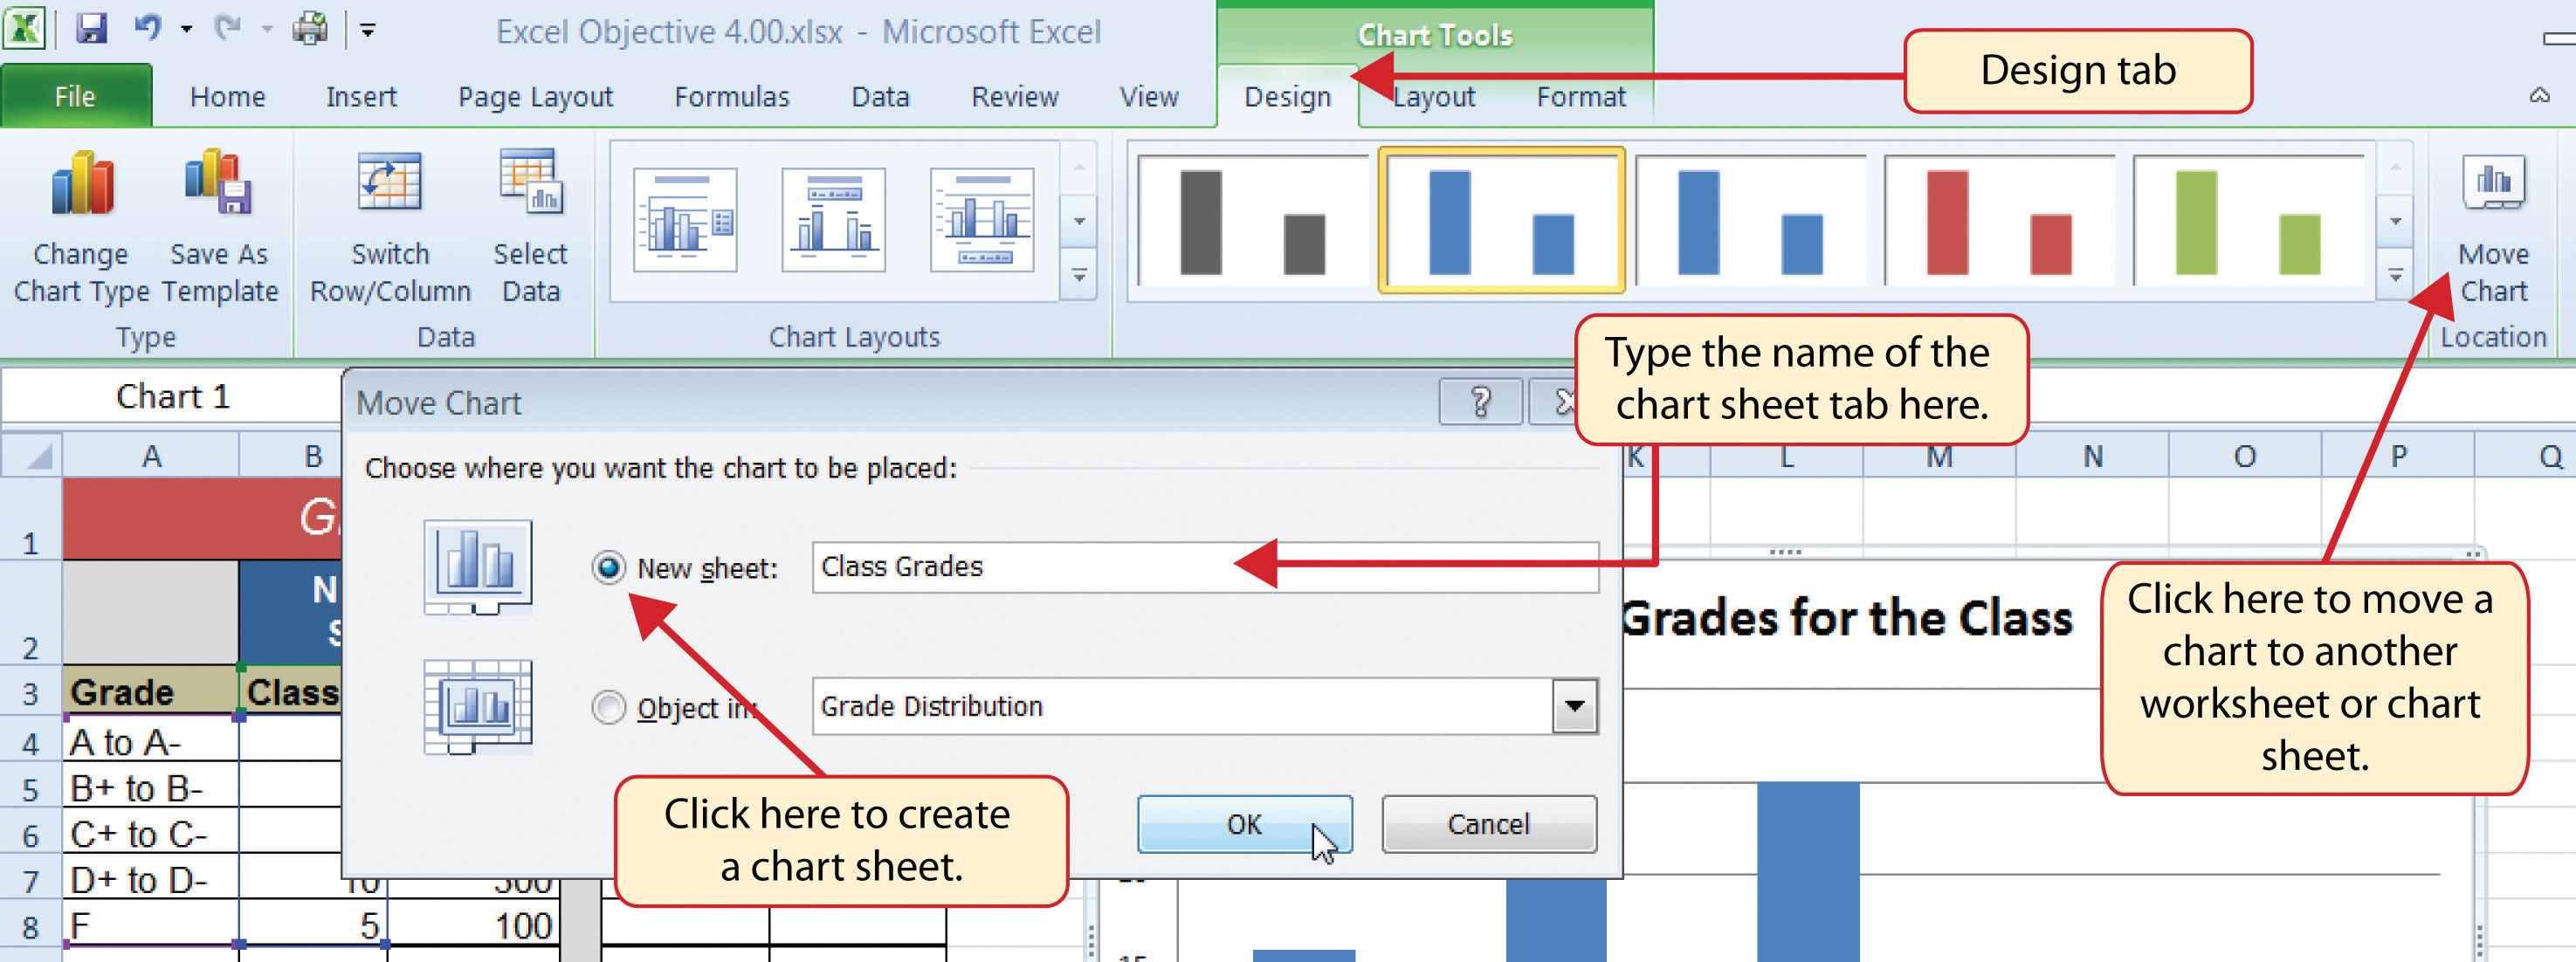 worksheet Insert A New Worksheet In Excel choosing a chart type creating sheet